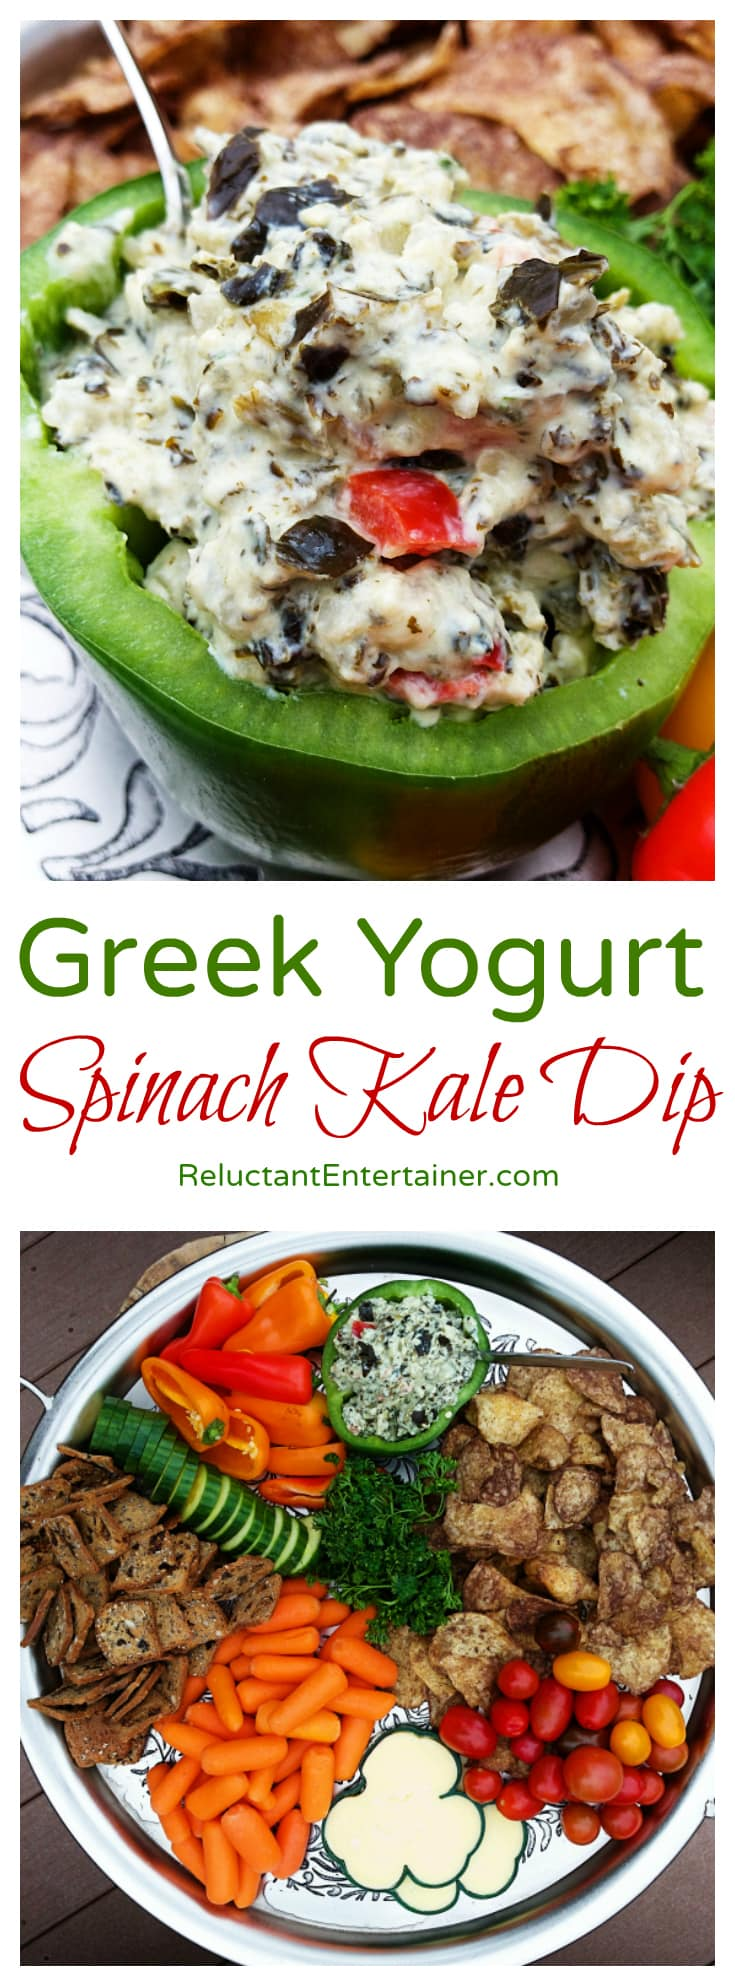 Greek Yogurt Spinach Kale Dip Recipe